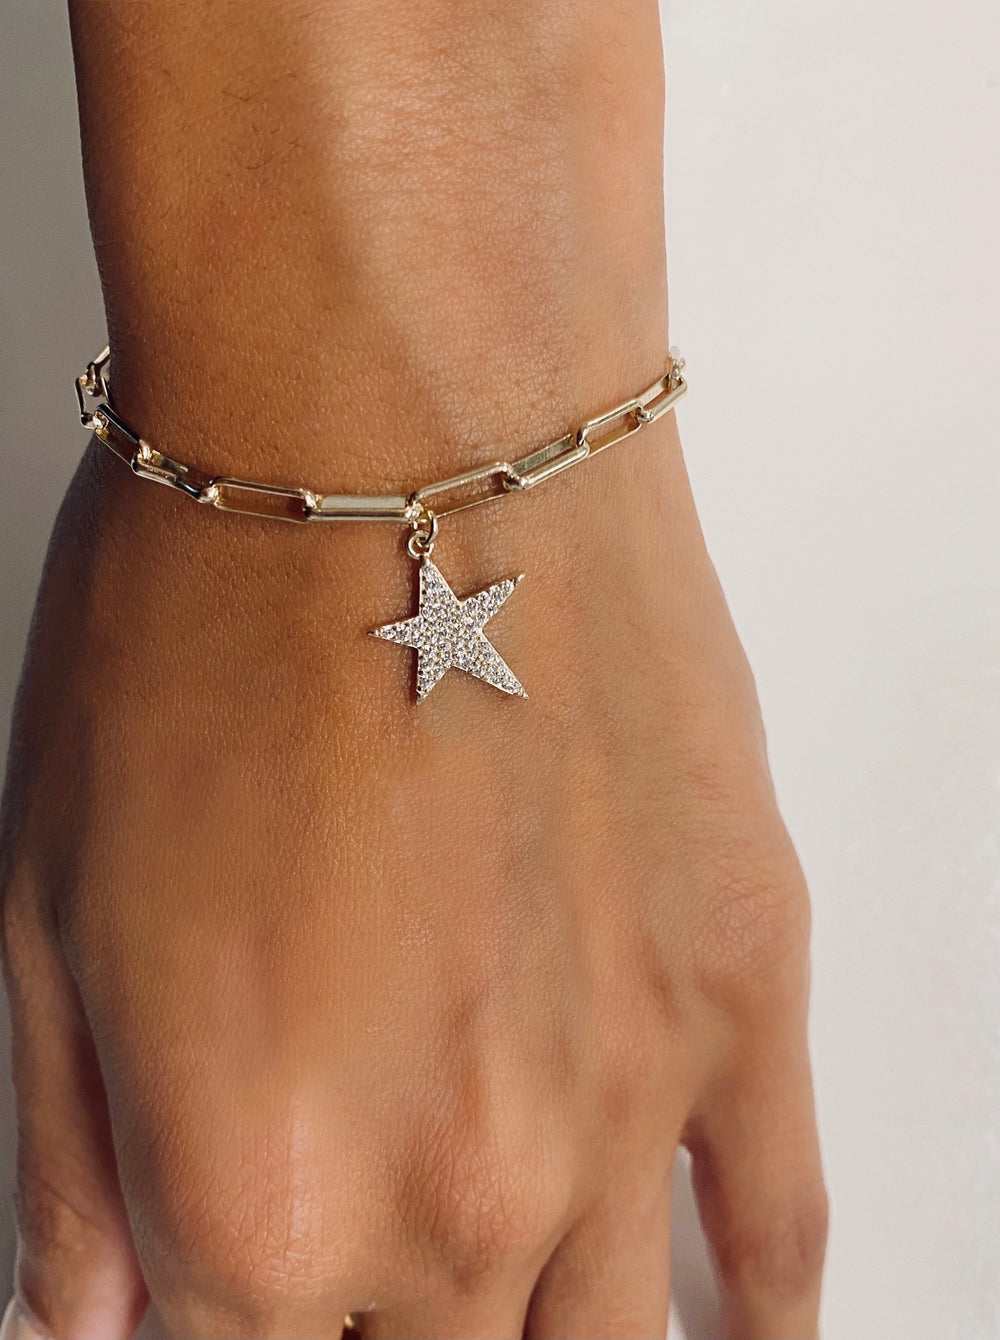 THE SINGLE STAR LINK BRACELET